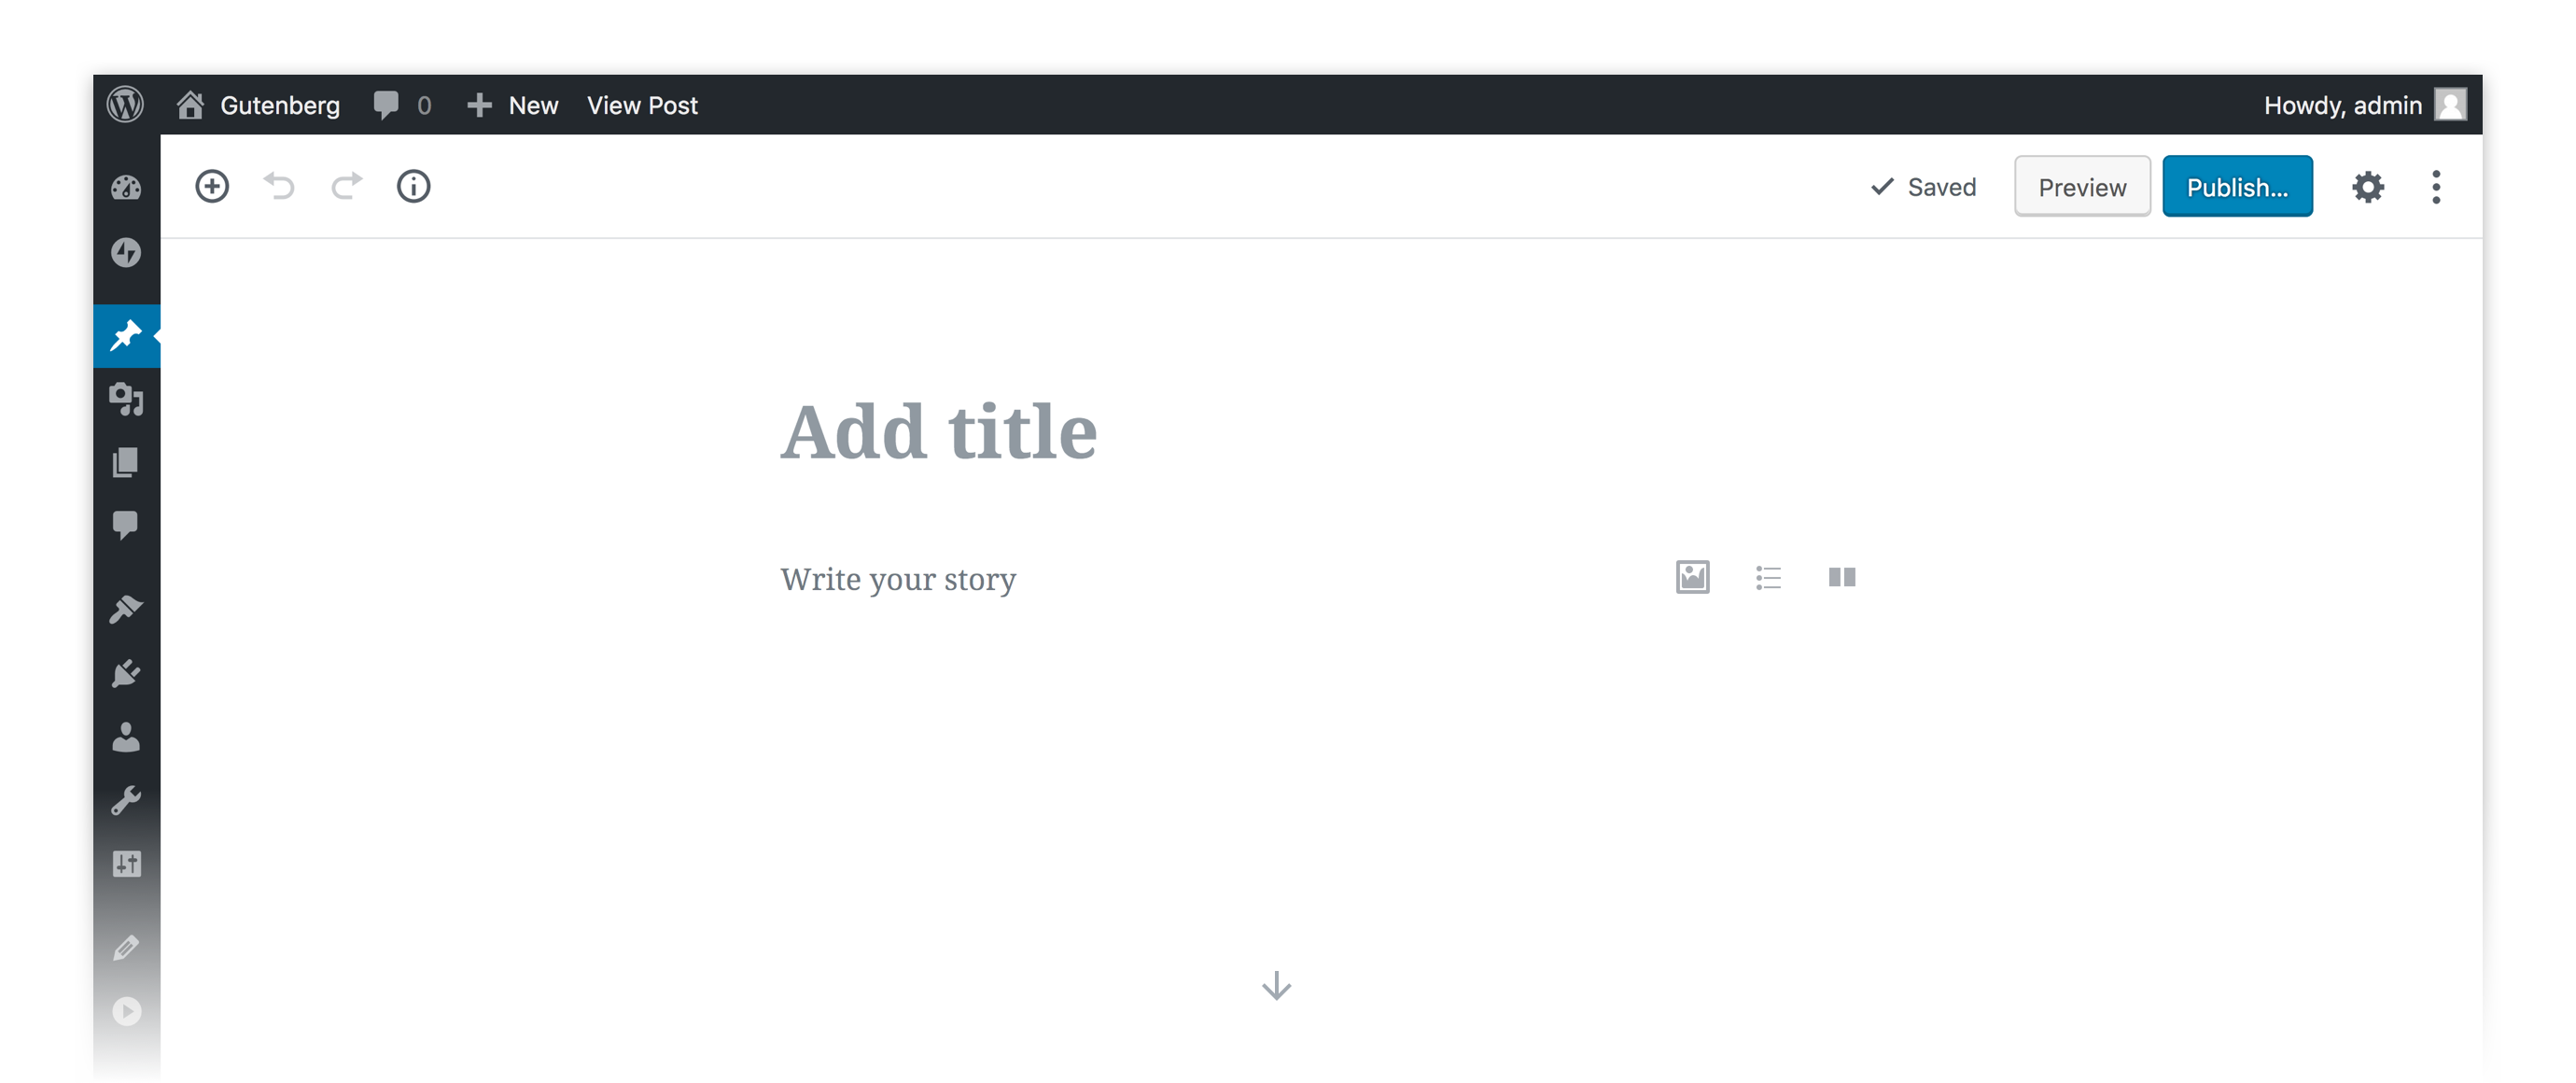 Meet Gutenberg! The New Editor From WordPress